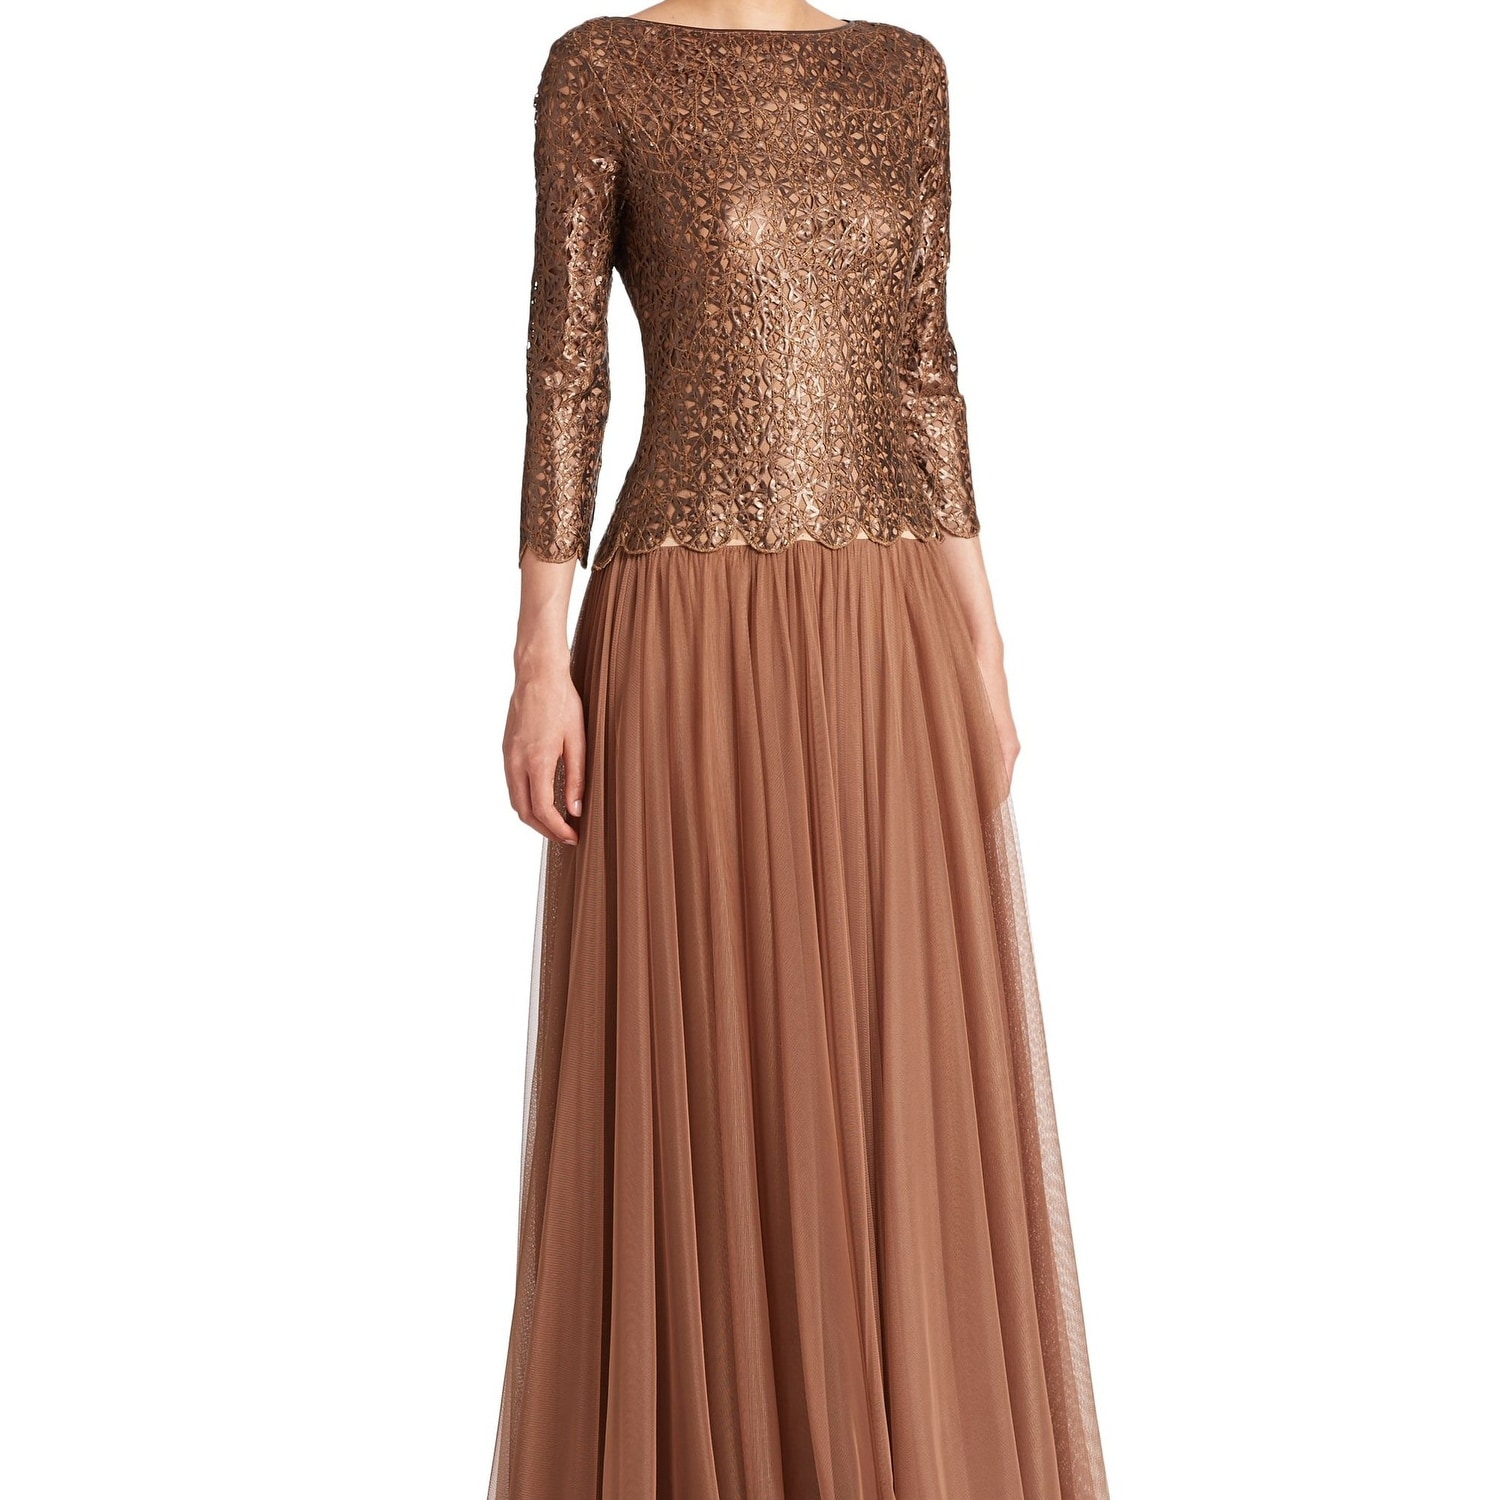 8bef5a37a2d8 Shop Tadashi Shoji Cutout Illusion Long Sleeve Evening Gown Dress Copper -  Free Shipping Today - Overstock - 20284451